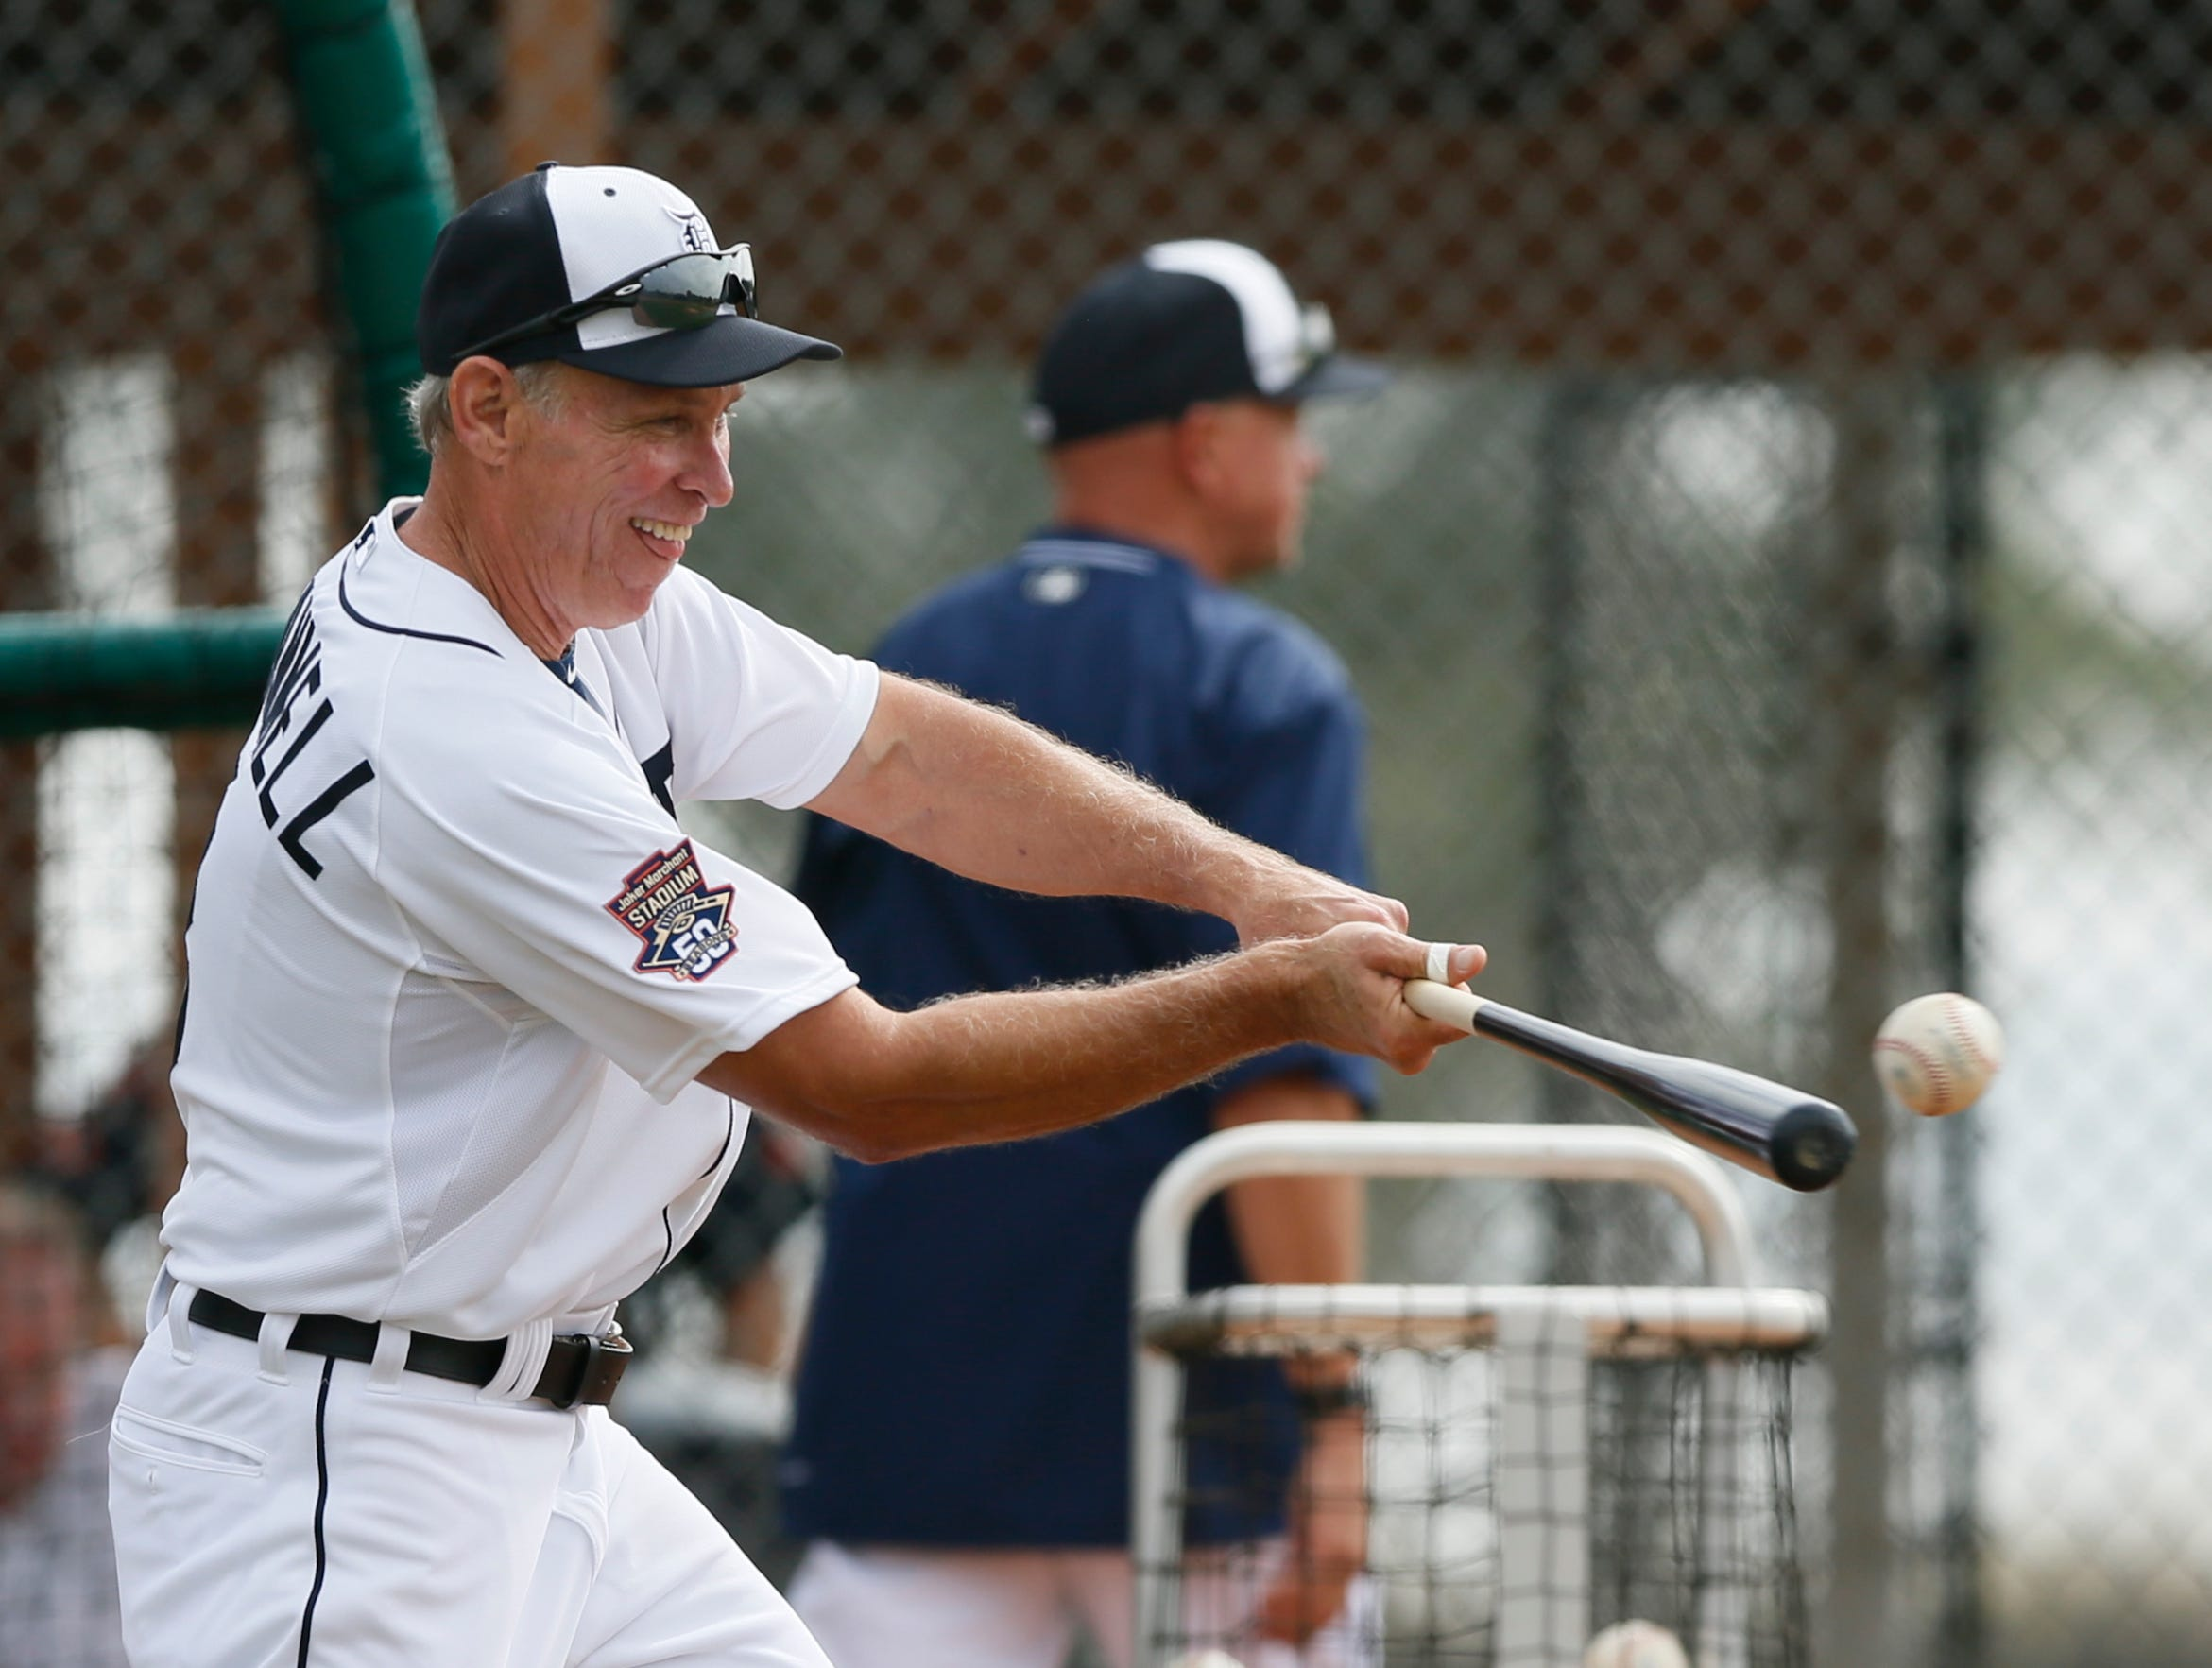 Detroit Tigers Alan Trammell, special assistant to the general manager, hits balls to players taking infield practice during the team's first full squad practice at spring training on Tuesday, February, 24, 2015 in Lakeland Florida.